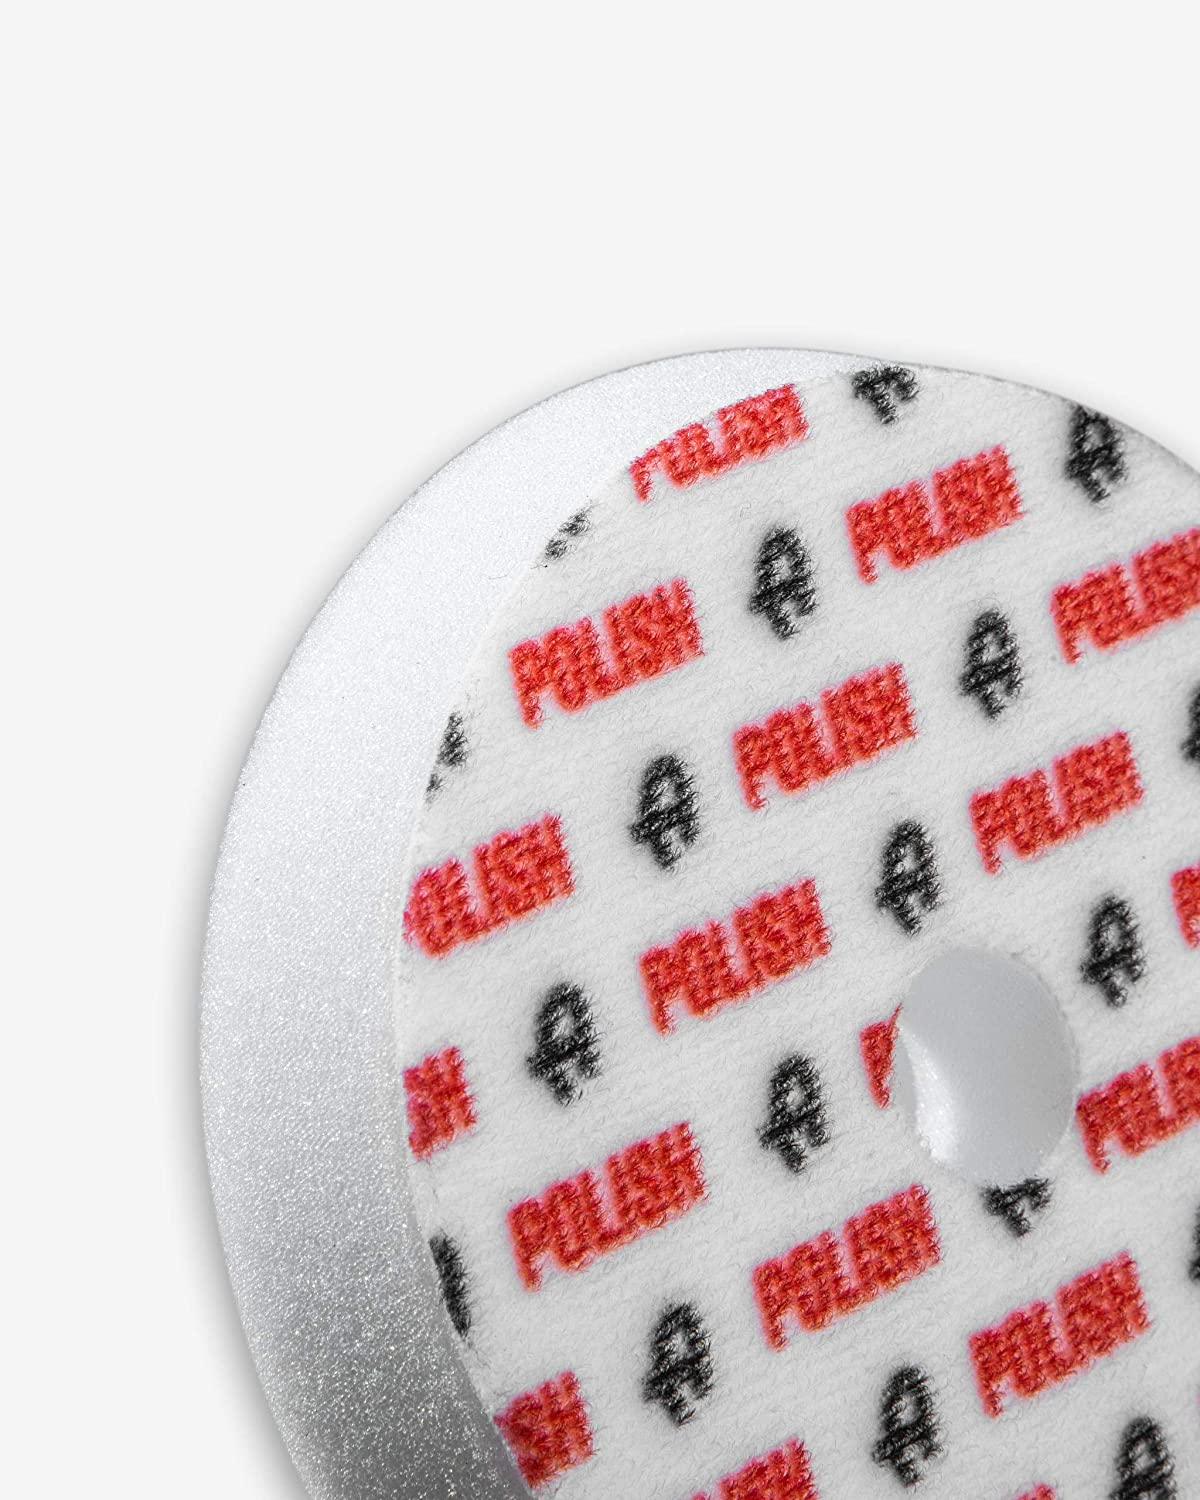 Color Coded to Match with Recommended Polishes or Compounds Adams 4 Premium Polisher Pads 2pk Expertly Designed to Make Polishing and Paint Correction Easier and Quicker White Finishing Pad